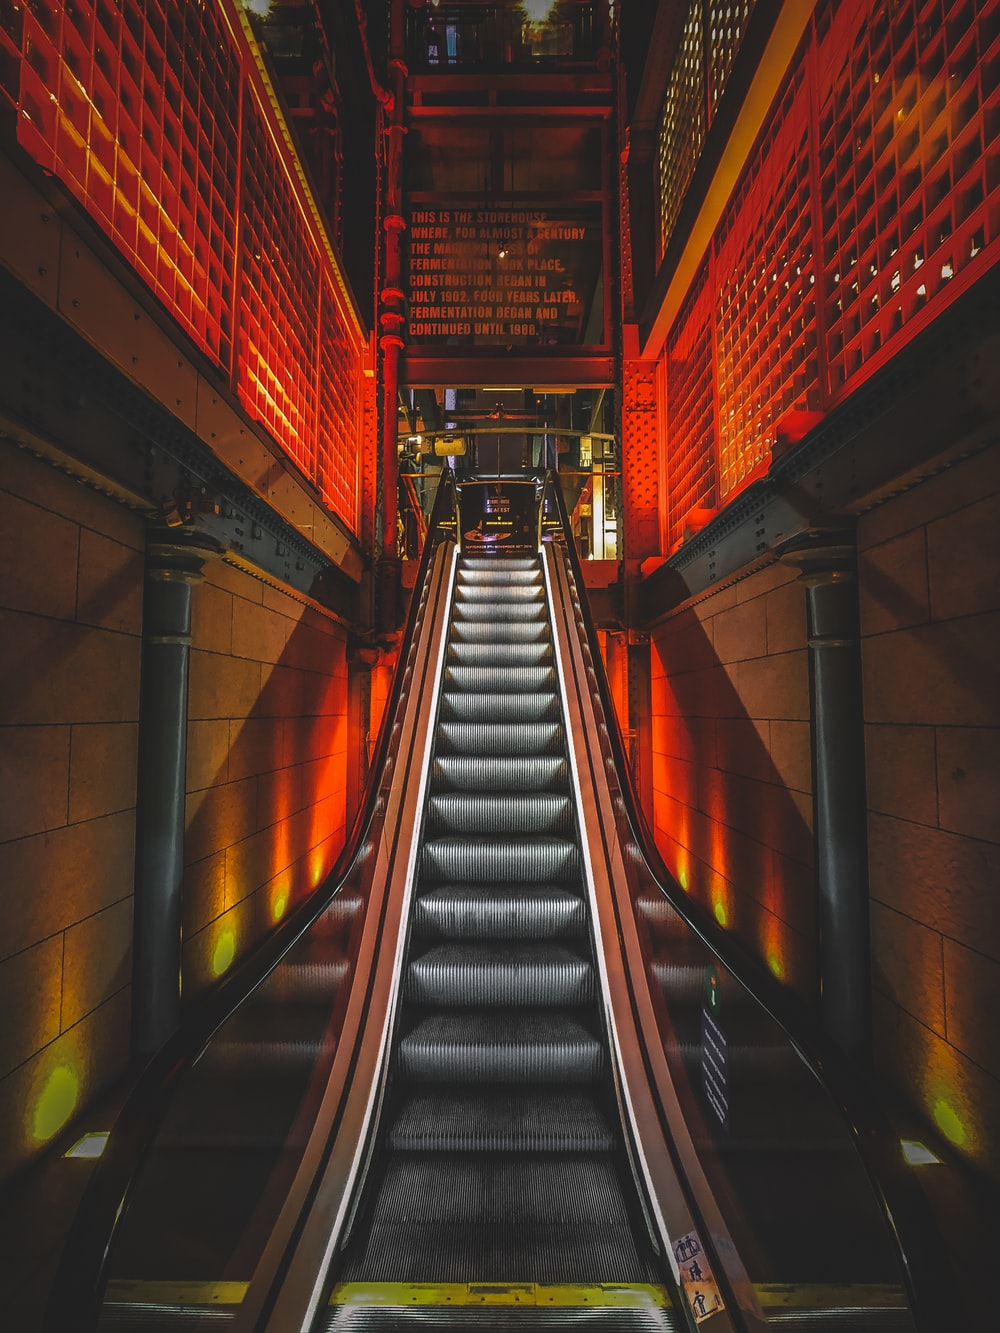 black and red escalator in a tunnel